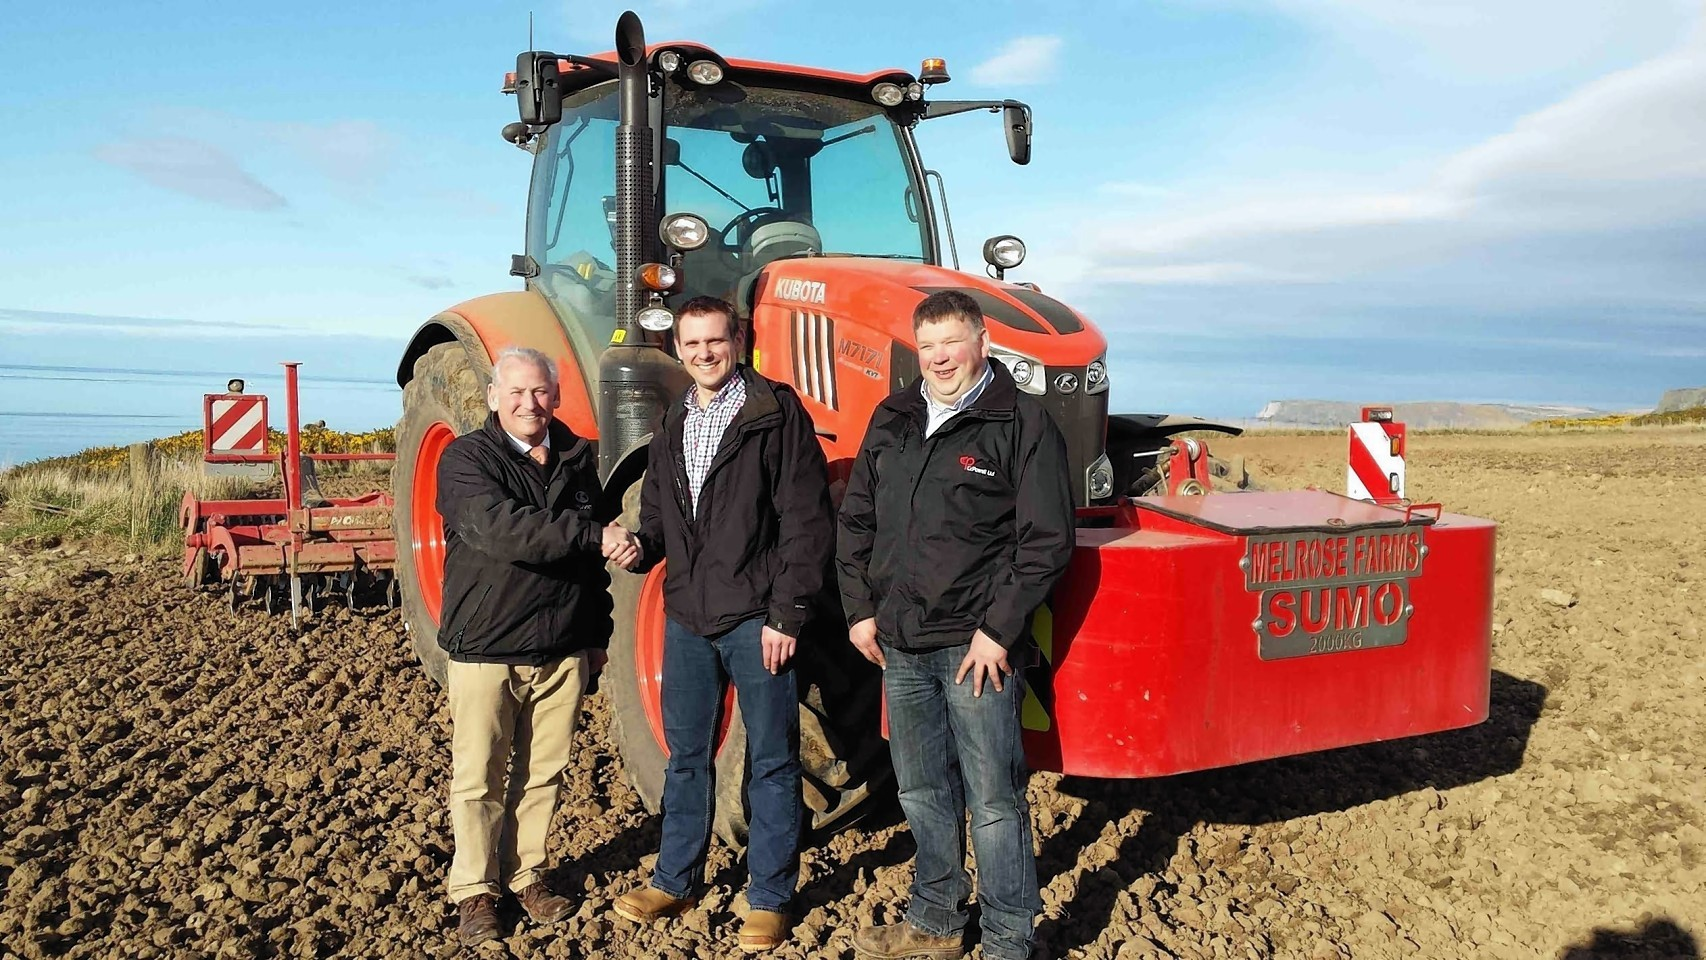 Richard Cheesbrough from Kubota with Chris Powell and Paddy Neville from CC Powell.